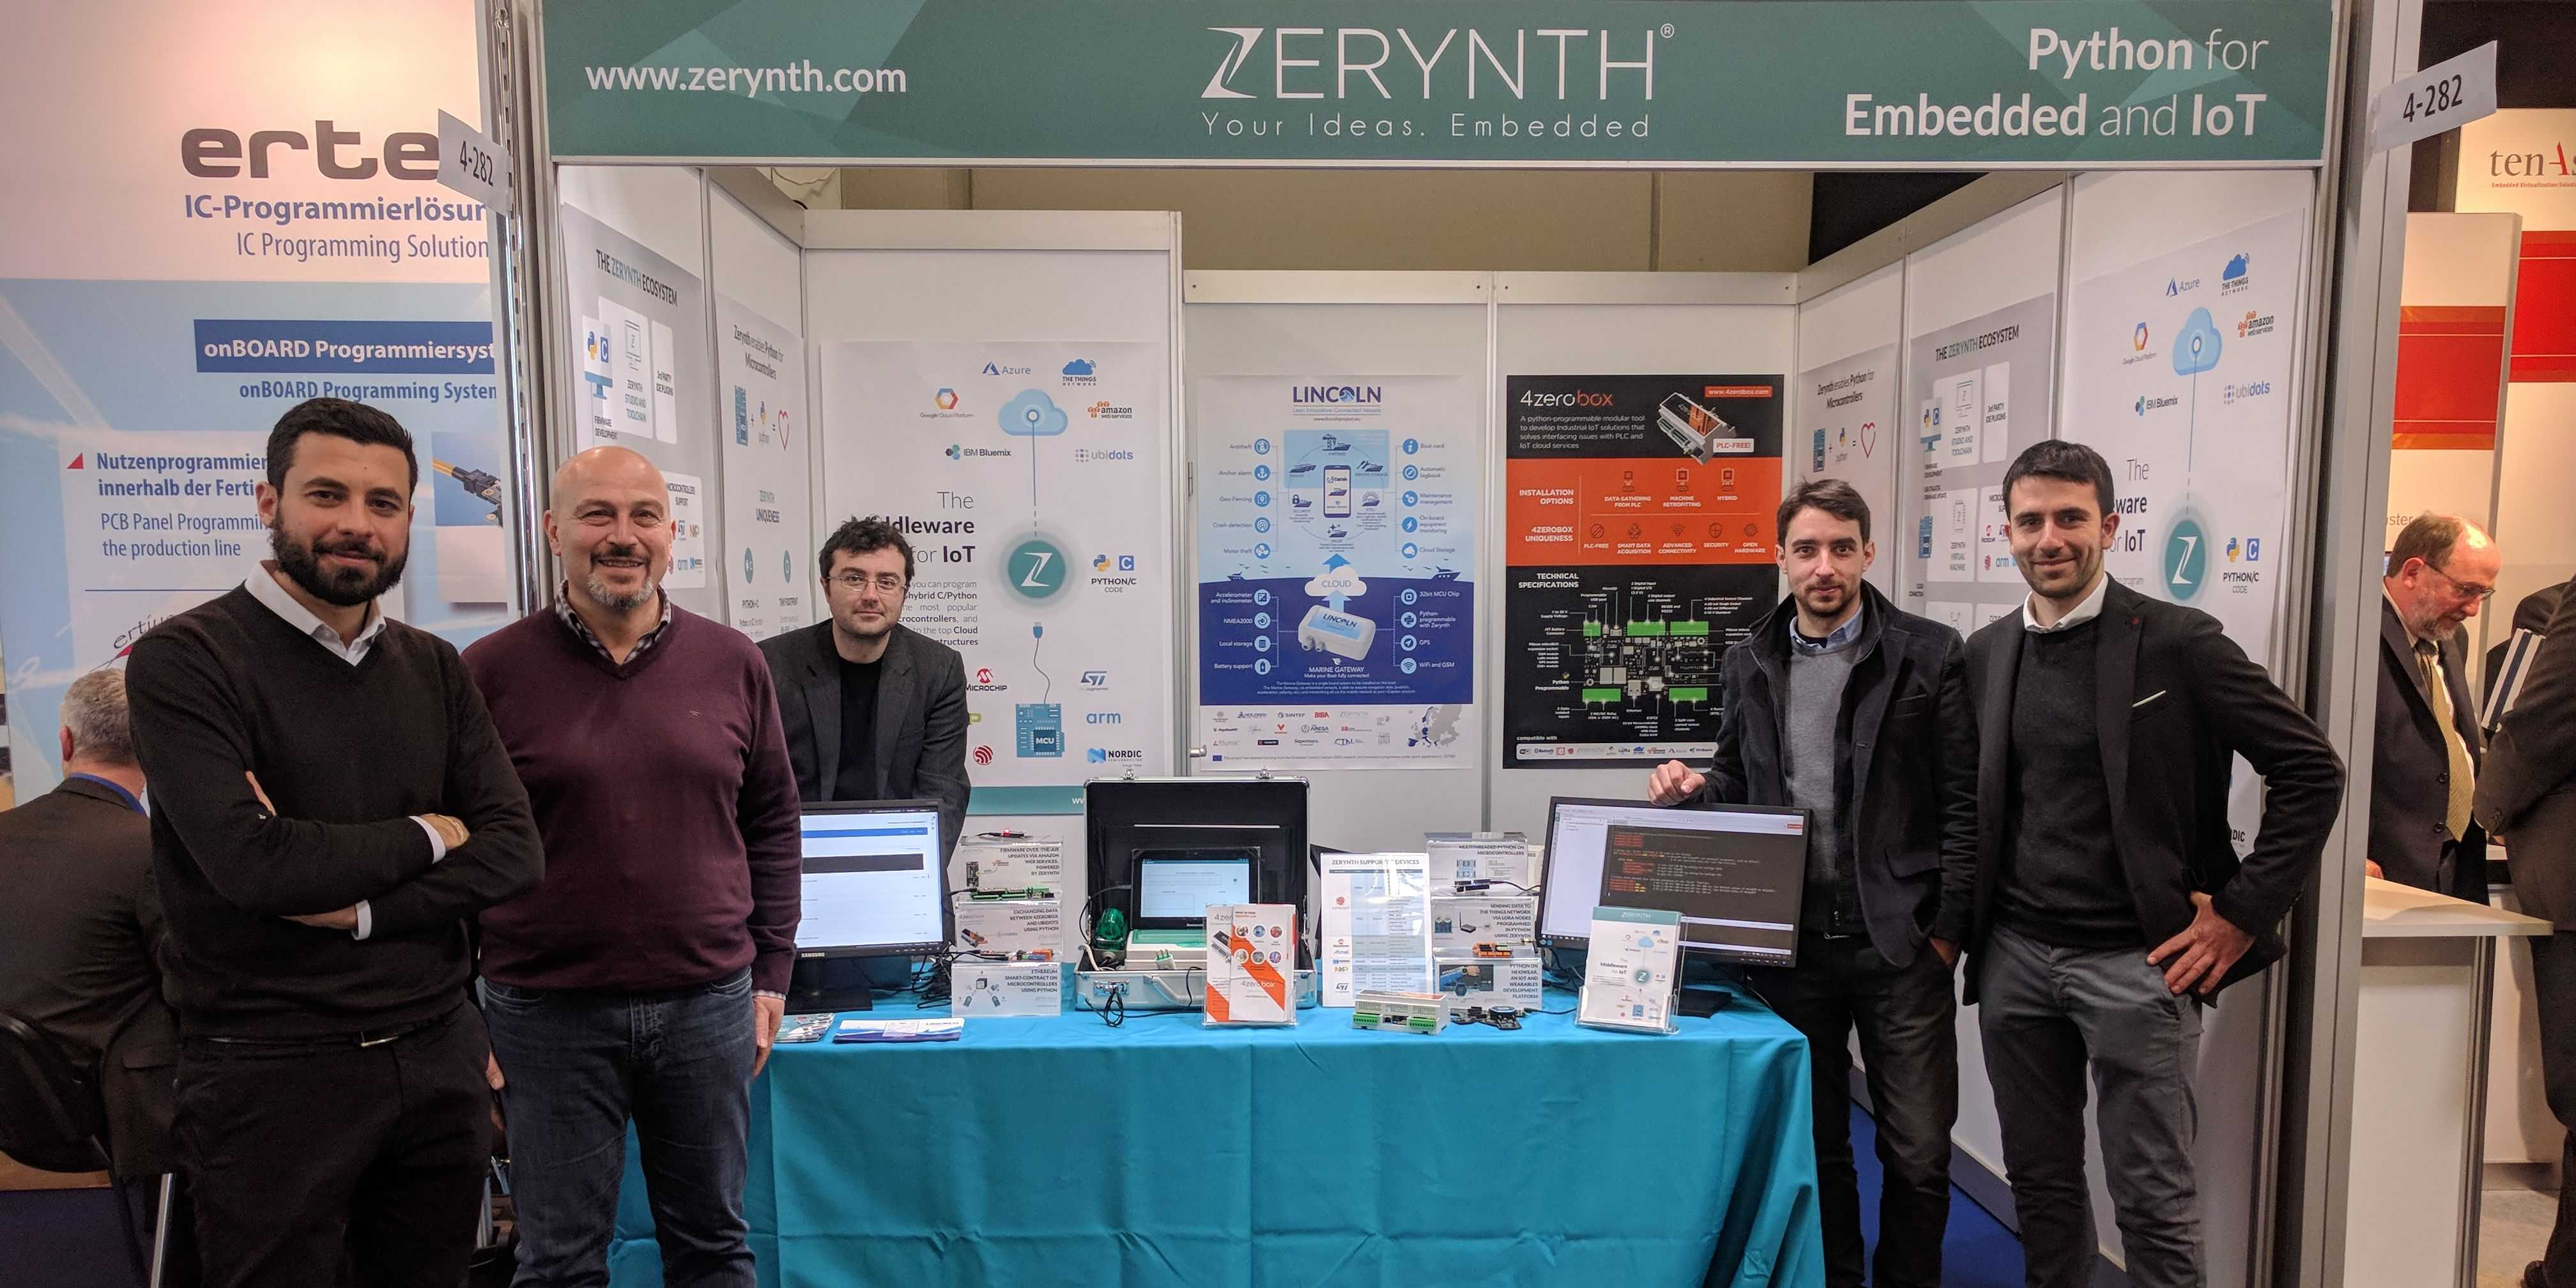 Day 3 at Embedded World with Zerynth. See you next year!